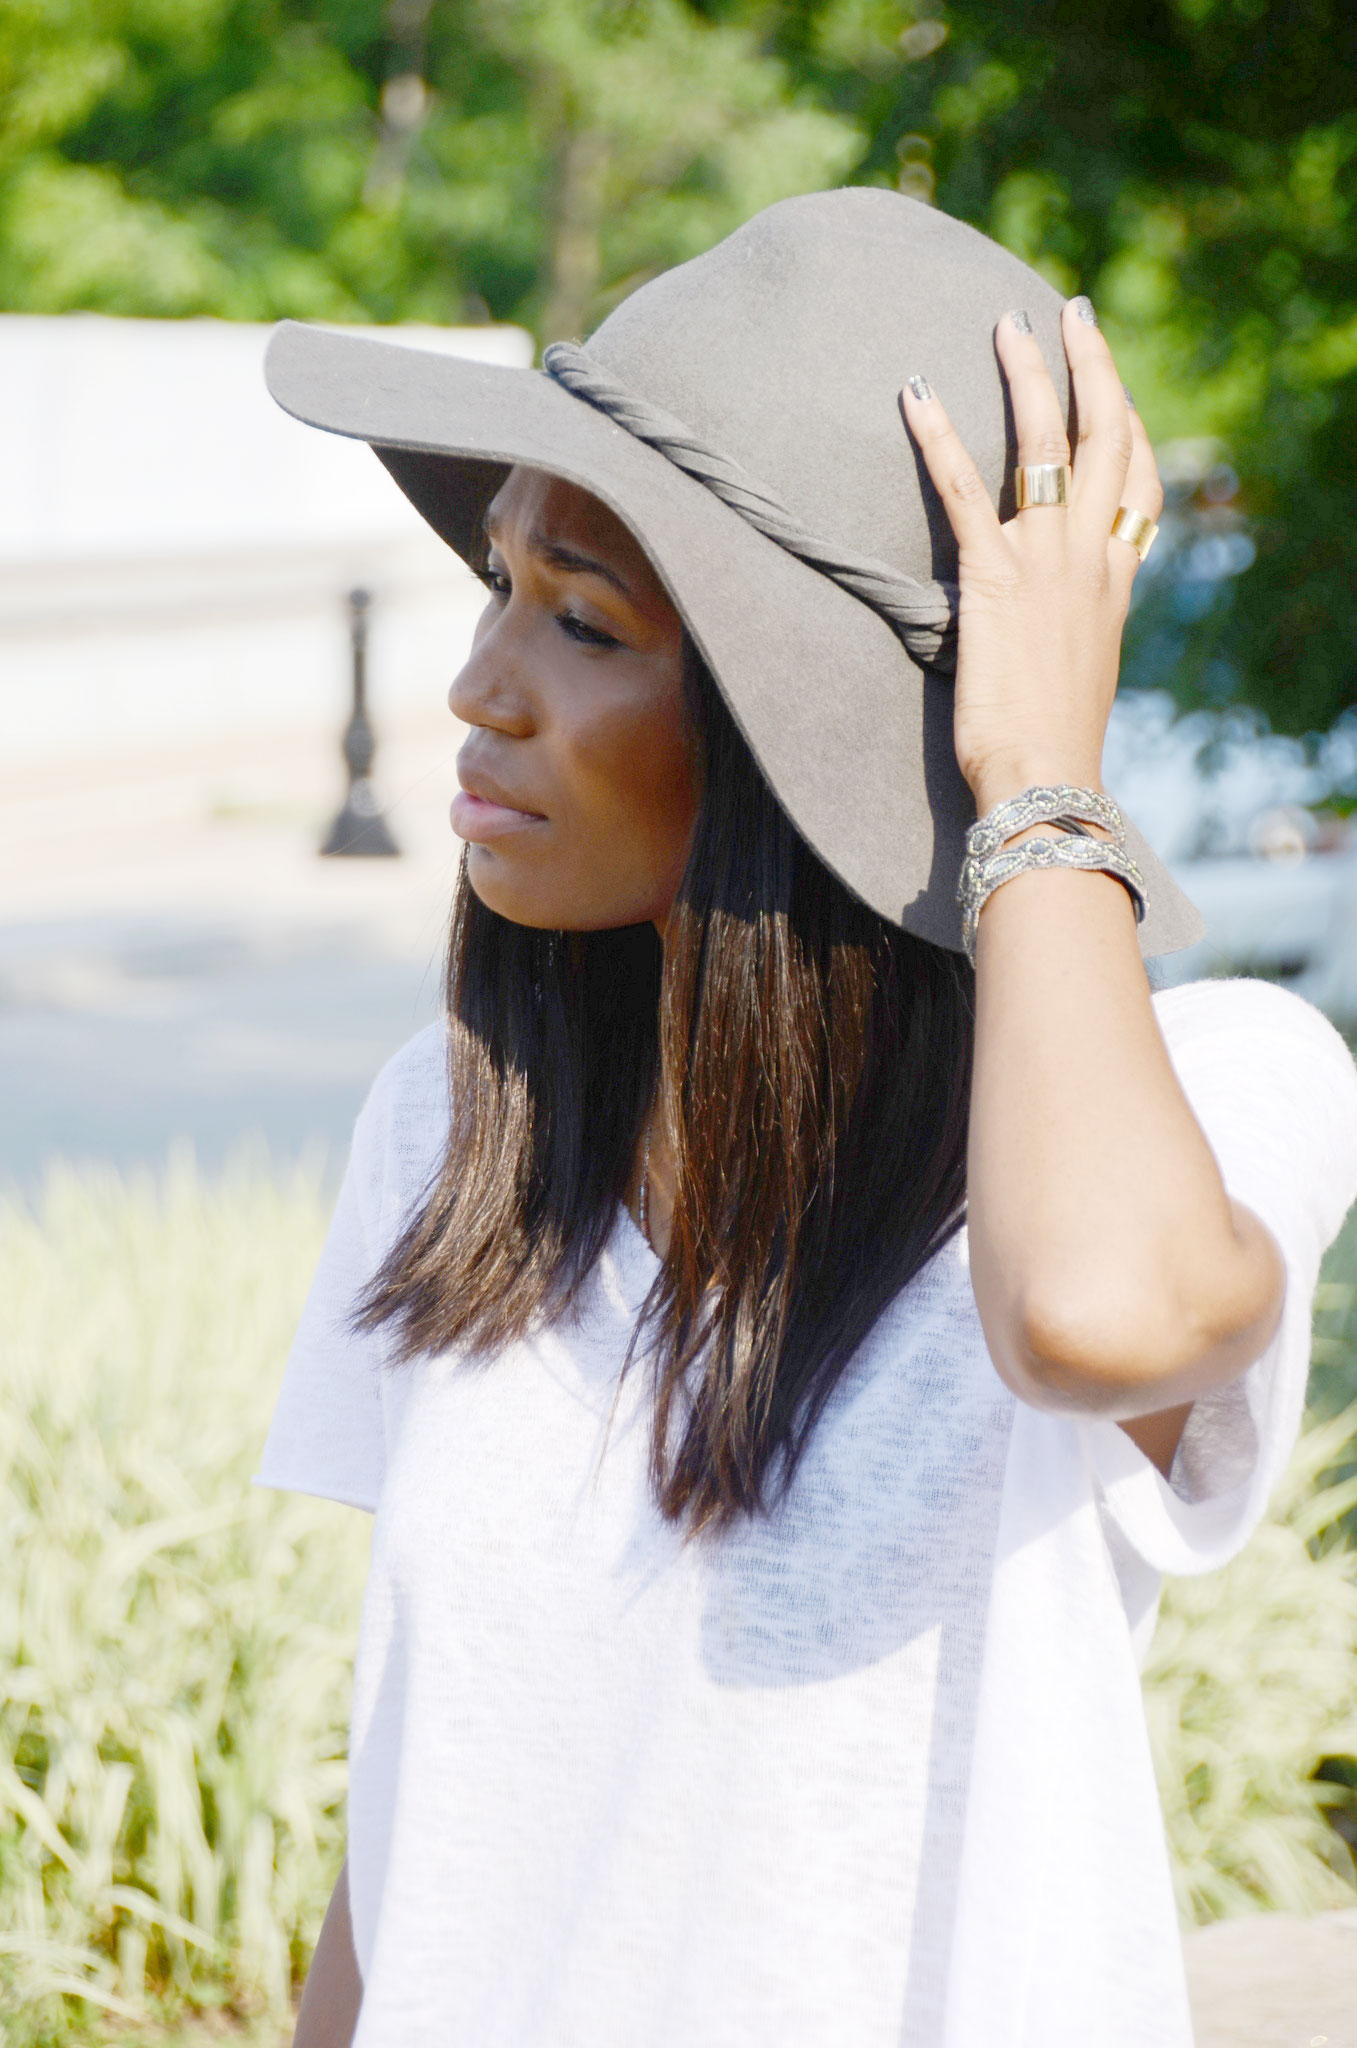 Free People Hats | Four One Oh! | Baltimore Fashion Blogger